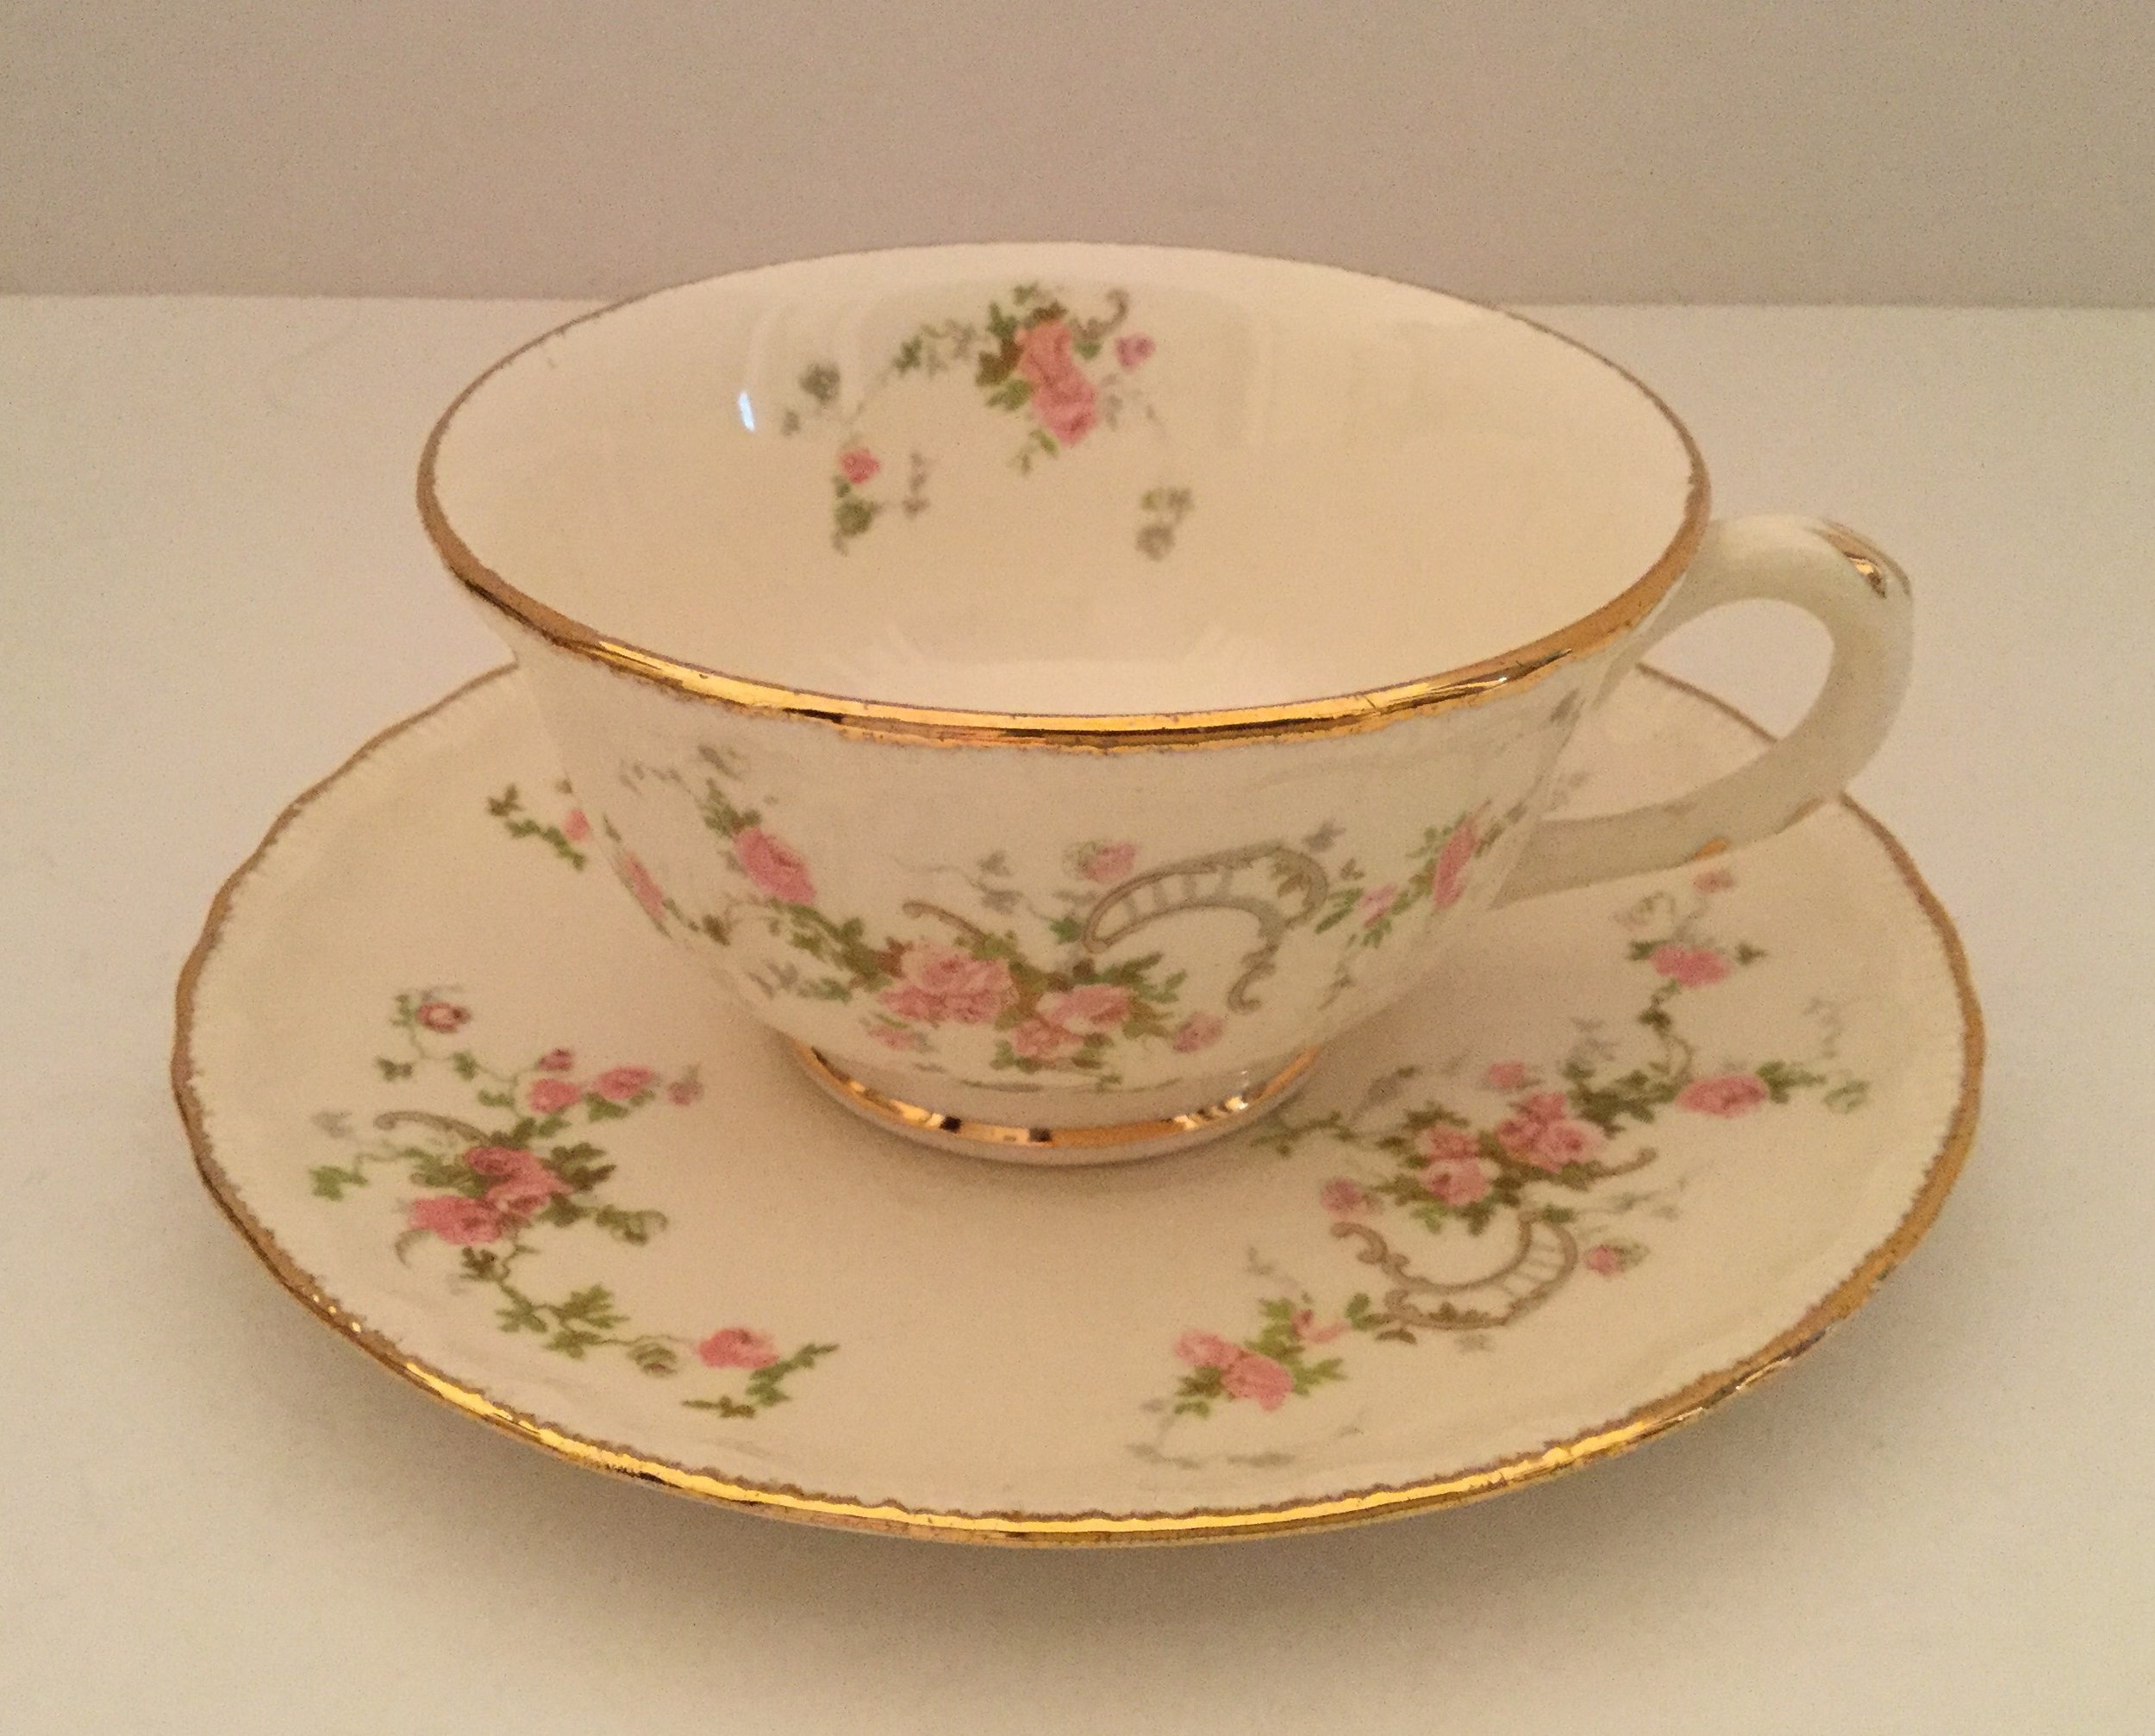 Pope Gosser 1950s New Princess pattern cup and saucer ...a collected cup and saucer in my paternal grandmother's pattern